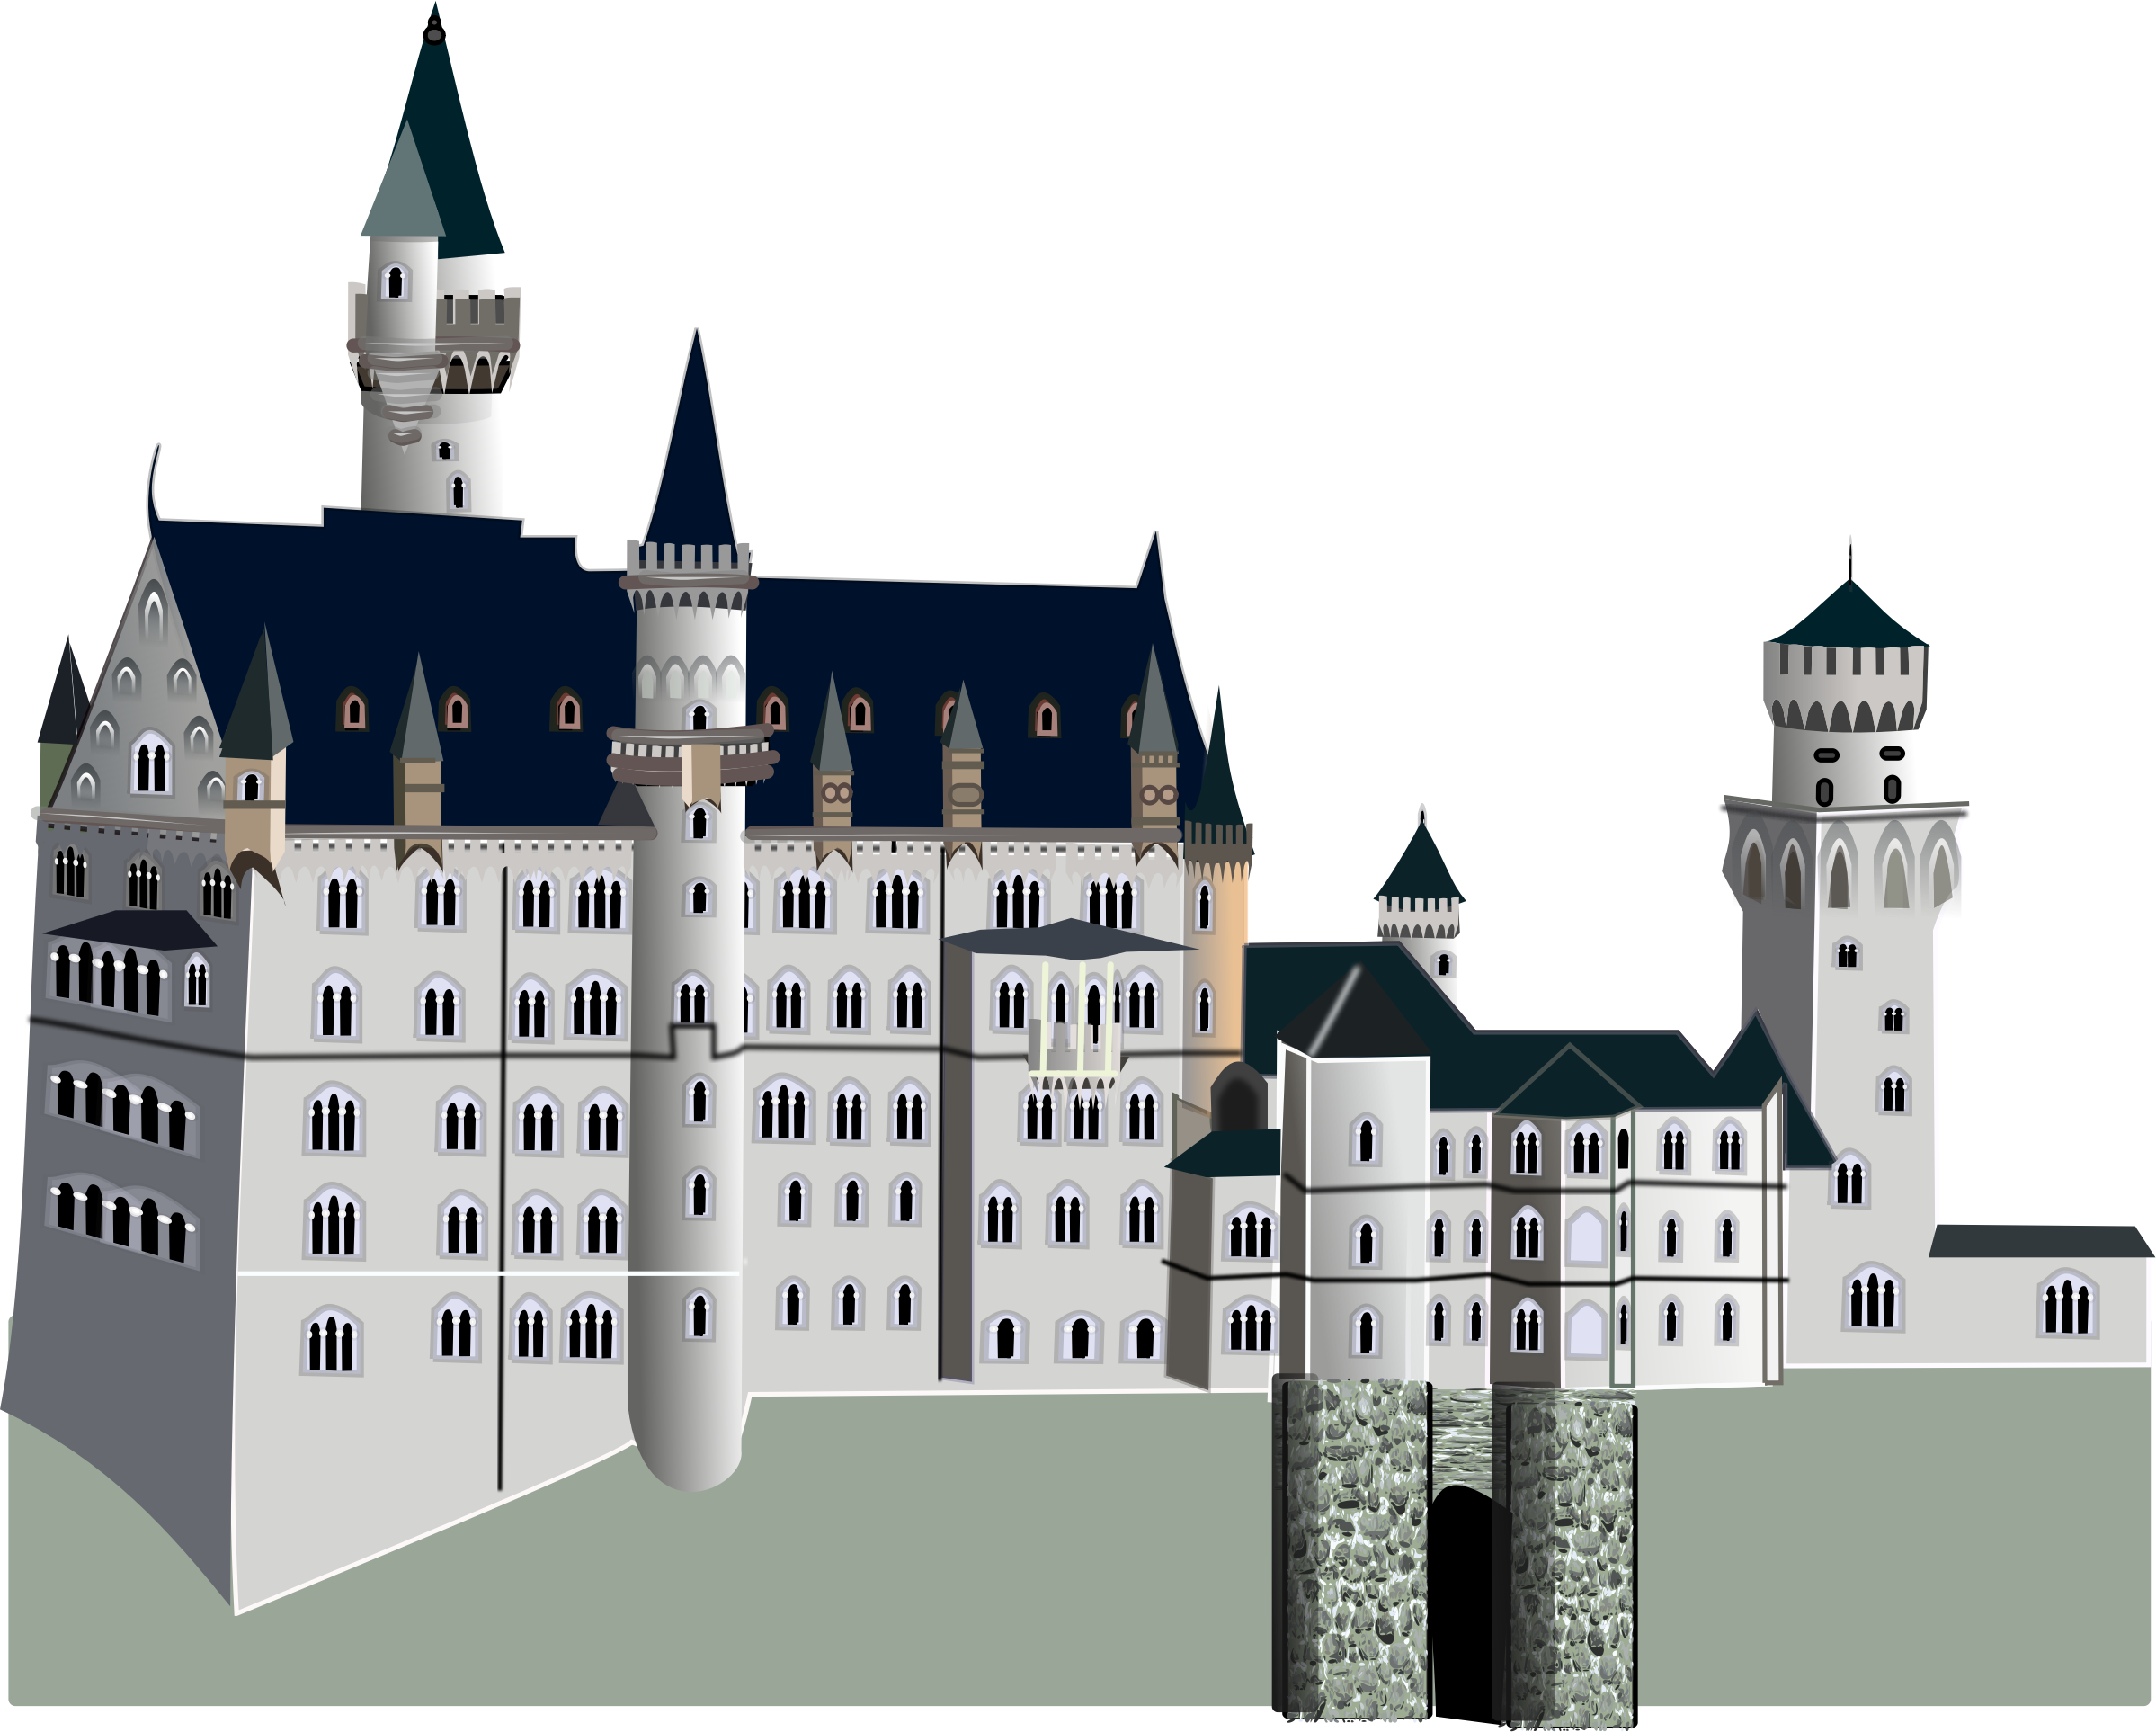 Transparent castle palace. Medieval icons png free